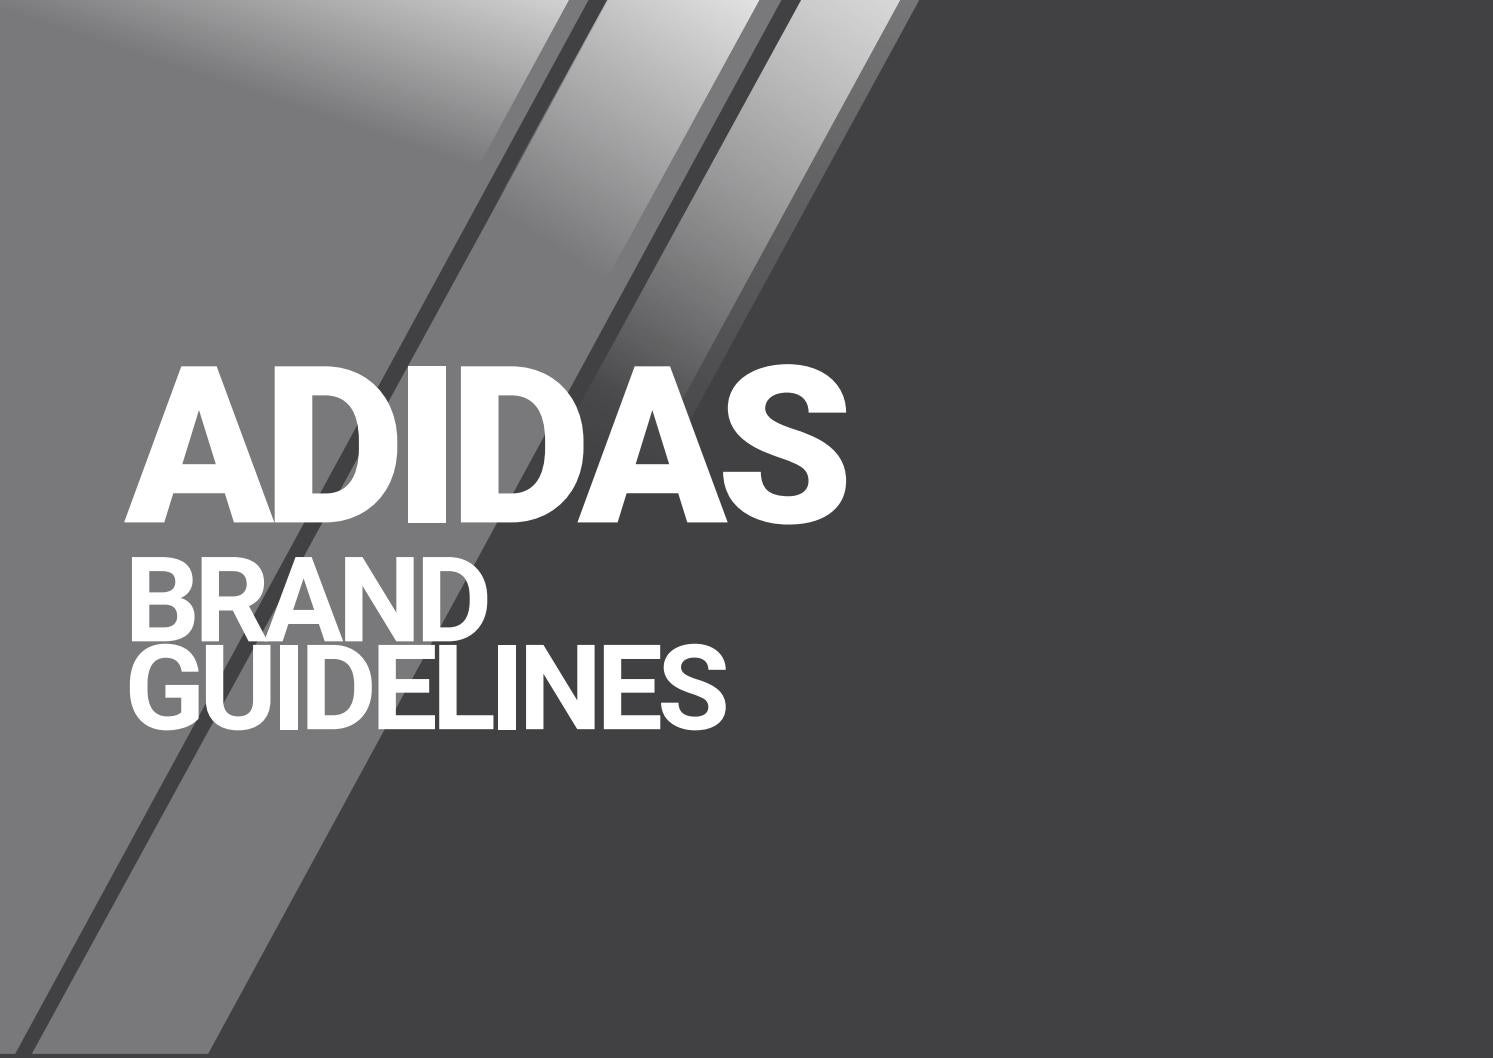 adidas brand guidelines by chris nguyen issuu rh issuu com Corporate Brand Book adidas brand identity guidelines